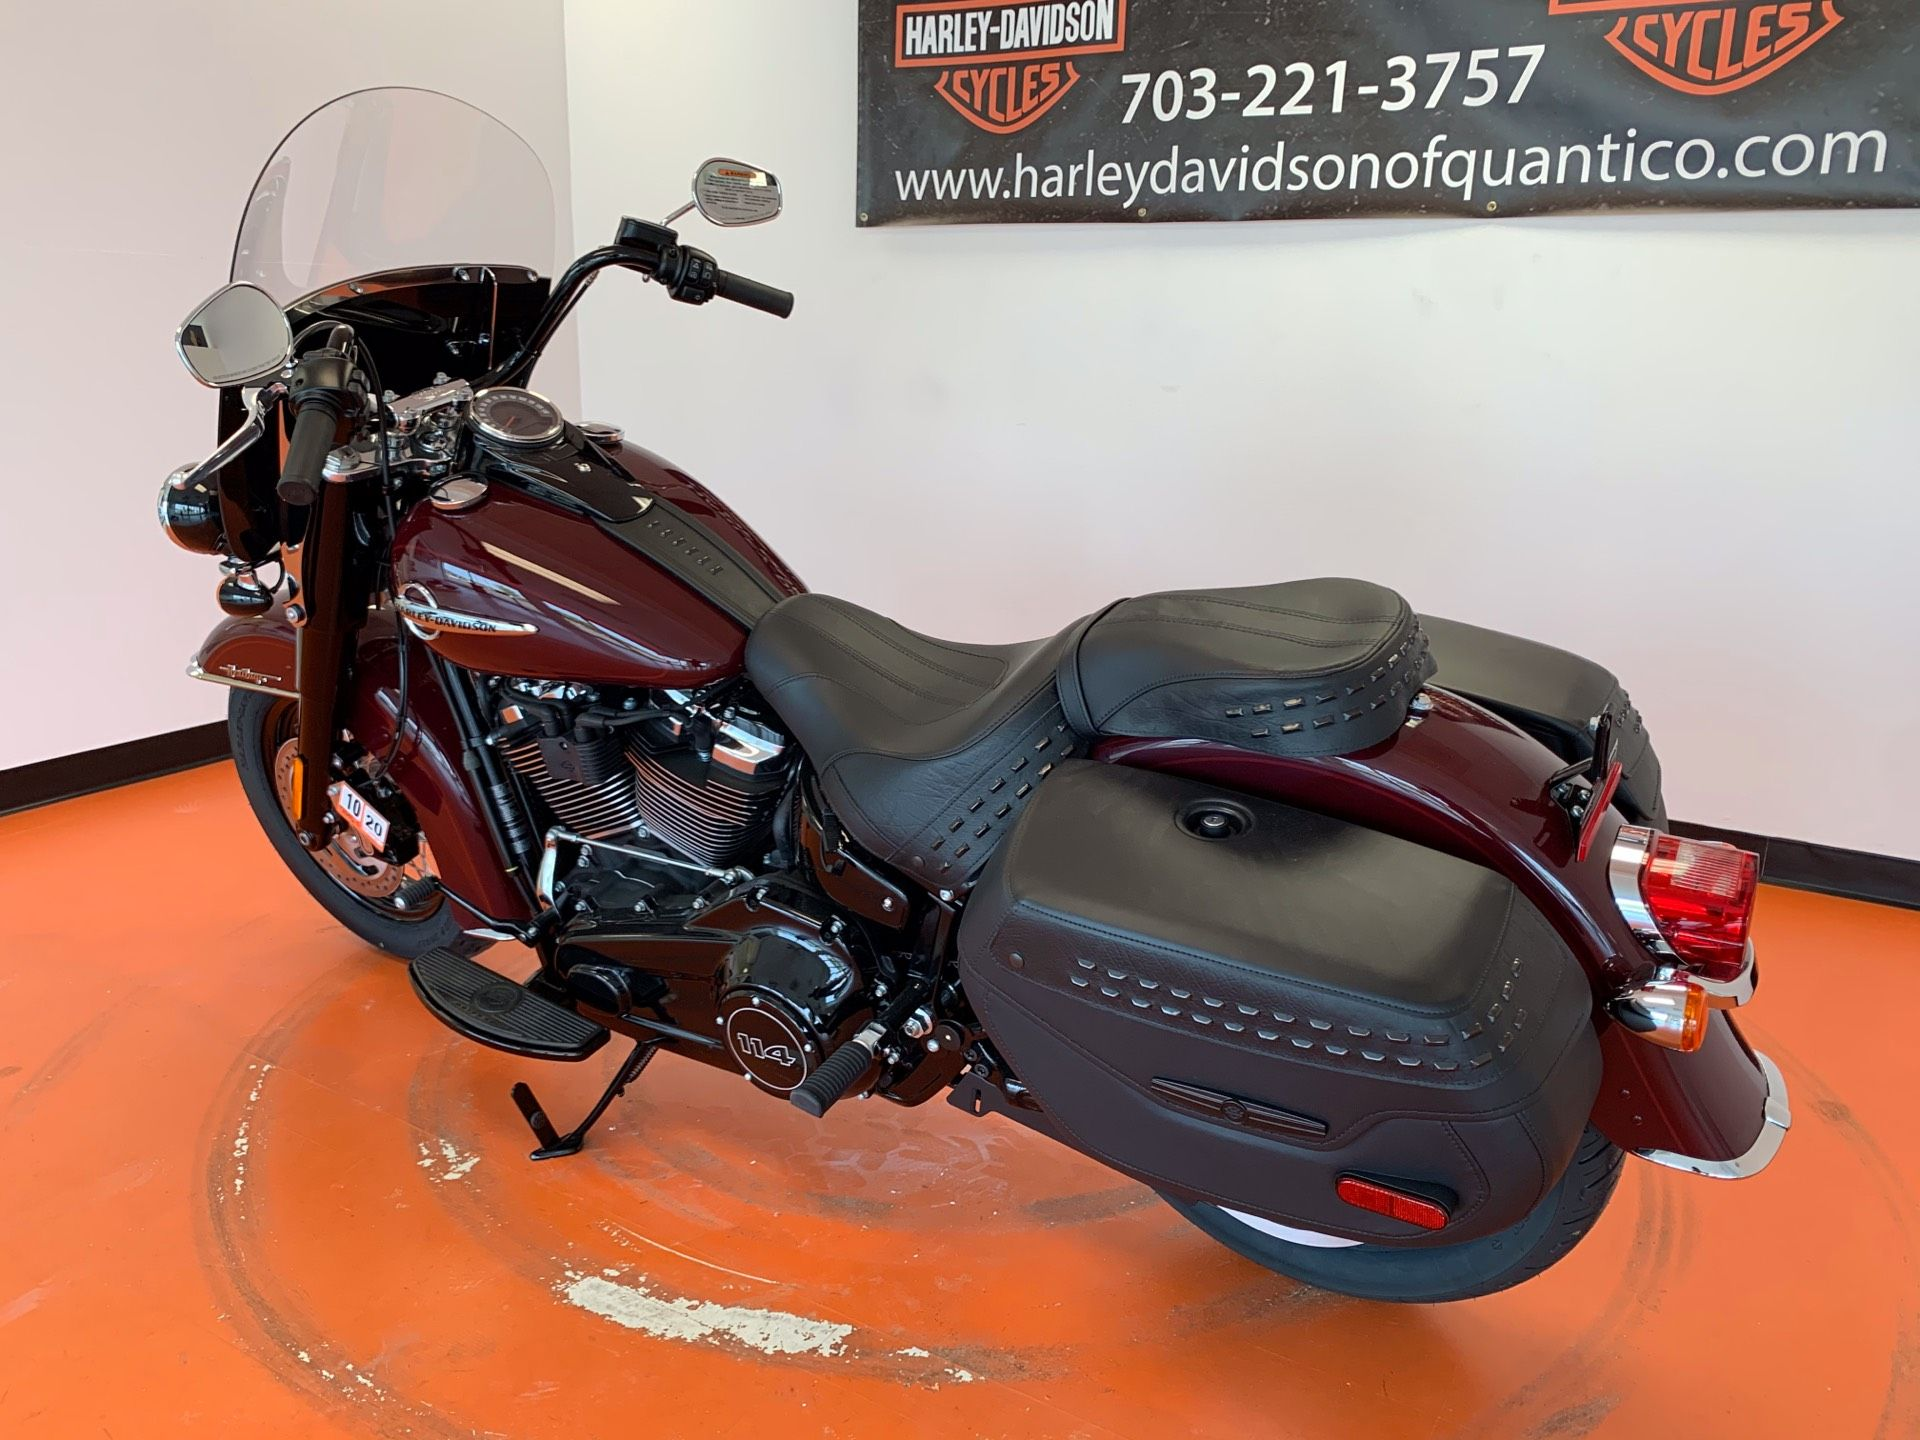 2020 Harley-Davidson Heritage Classic 114 in Dumfries, Virginia - Photo 20